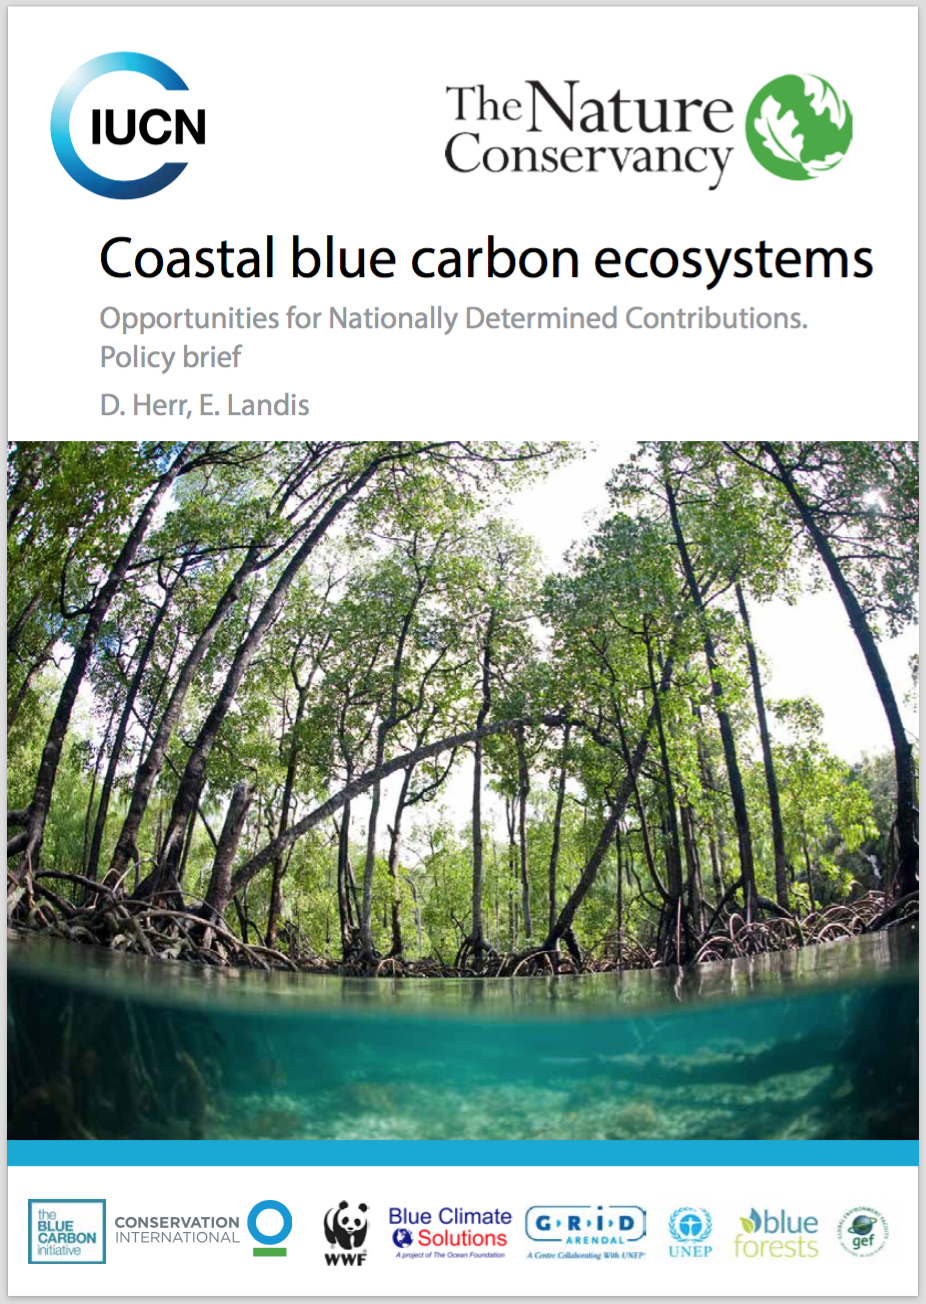 Coastal and island countries have an opportunity to take their blue carbon ecosystems into account when considering their national level climate actions.